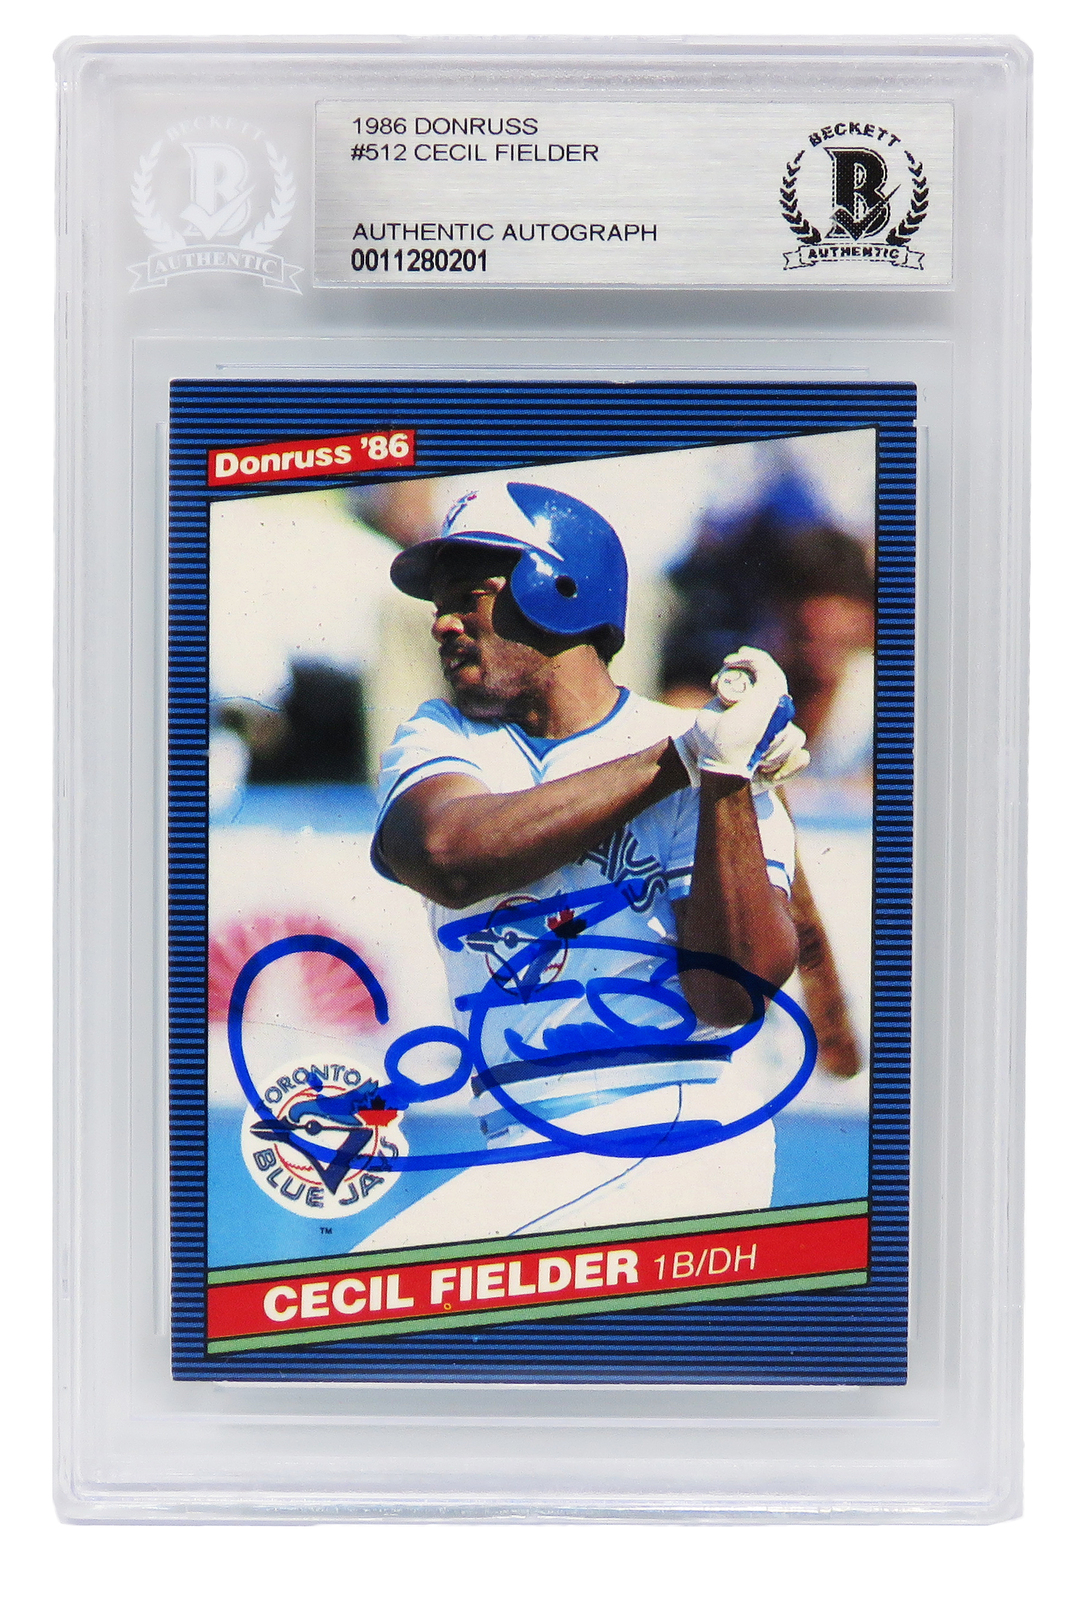 Primary image for Cecil Fielder Signed Toronto Blue Jays 1986 Donruss Baseball Rookie Card #512